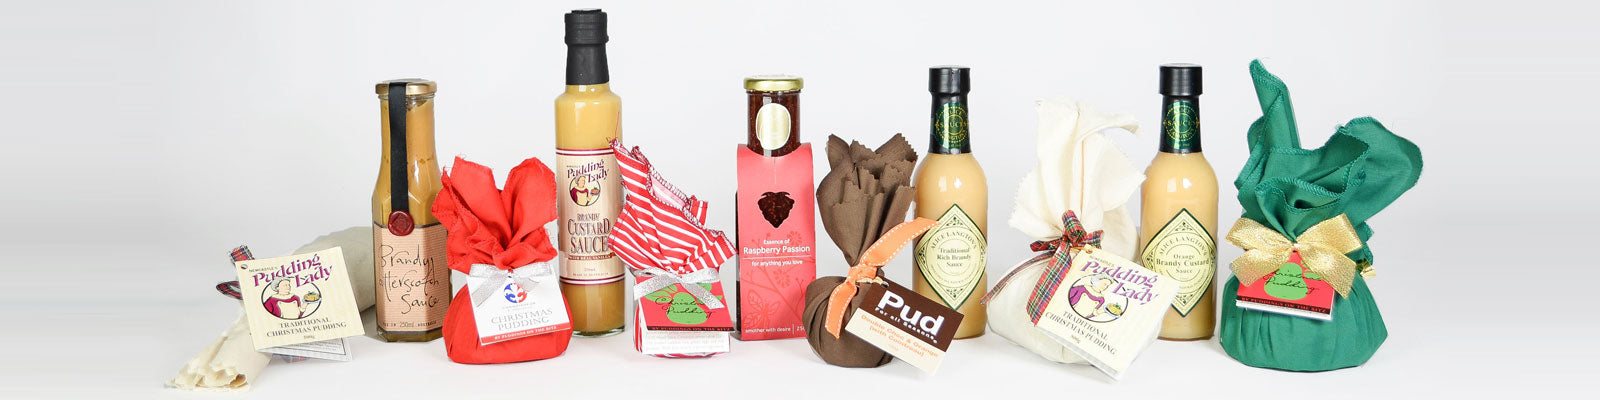 Gourmet Living Hampers